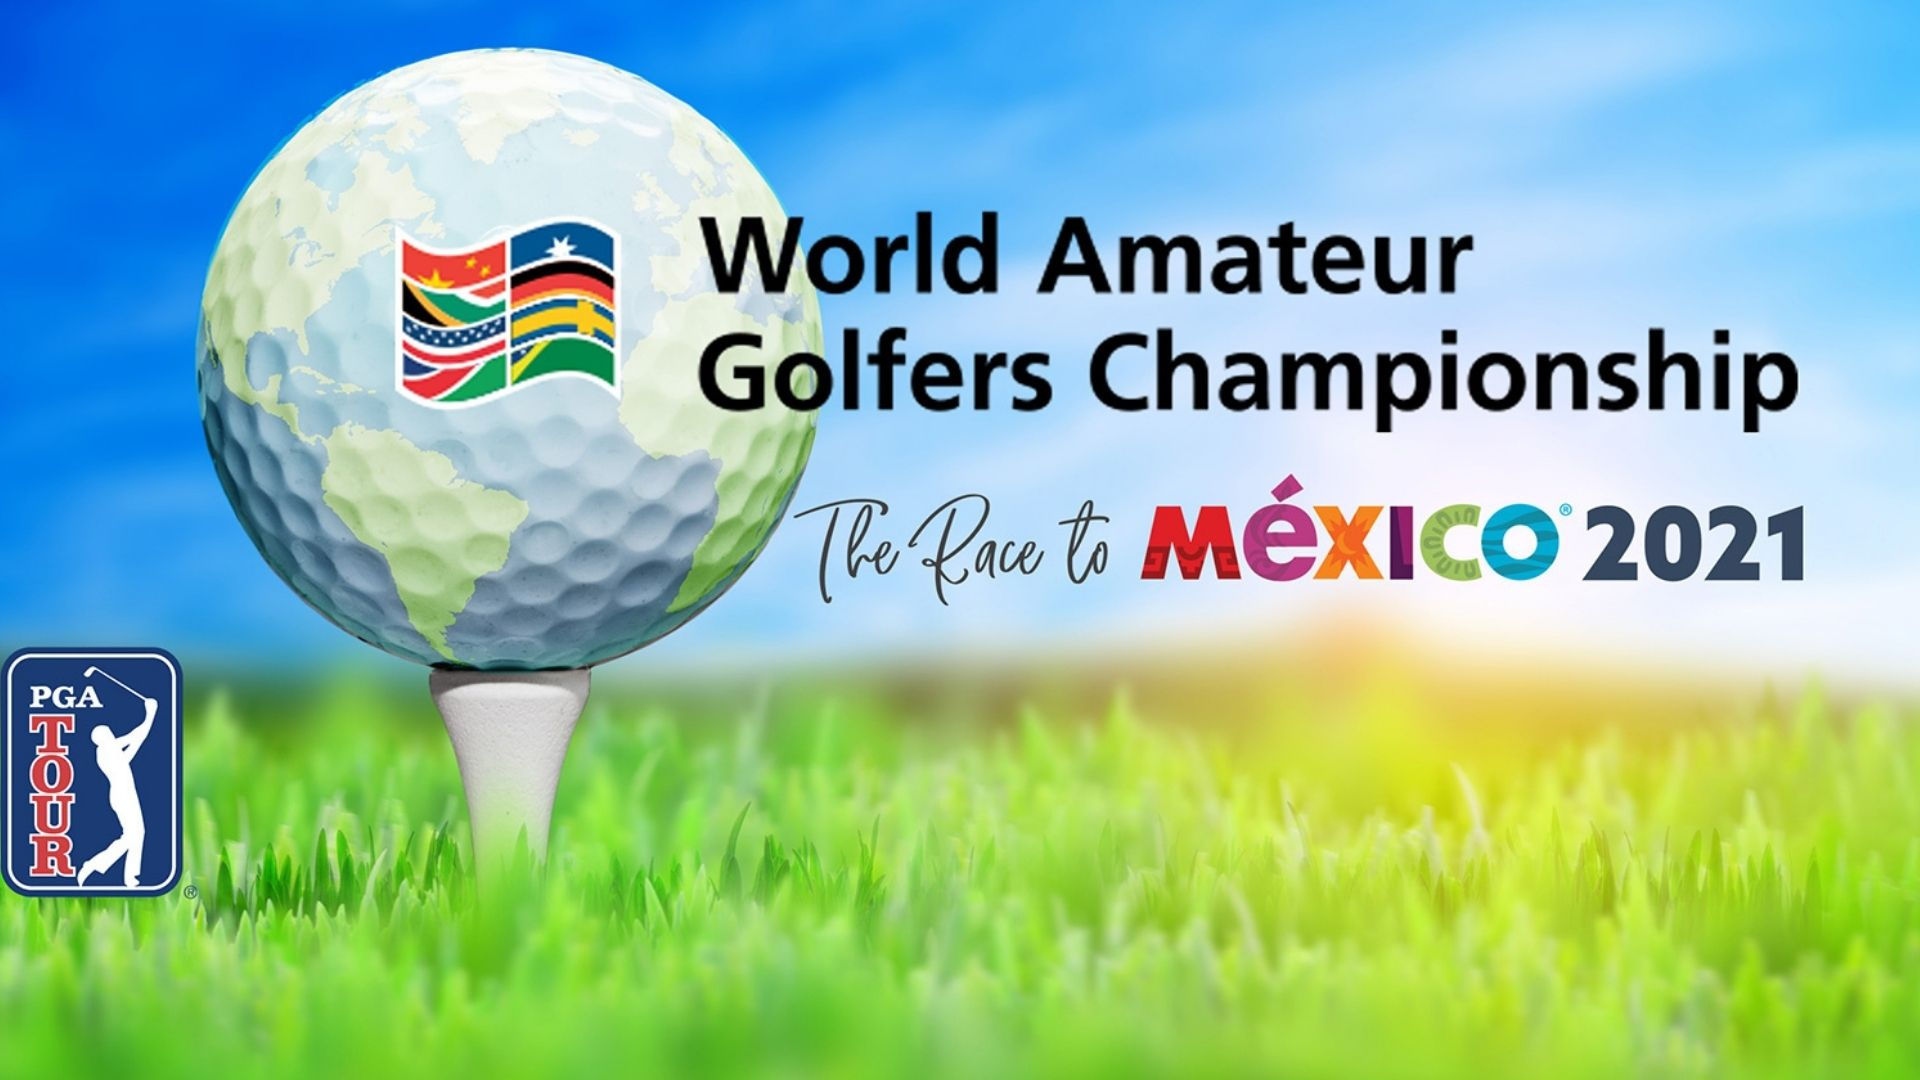 WAGC Golf Competition